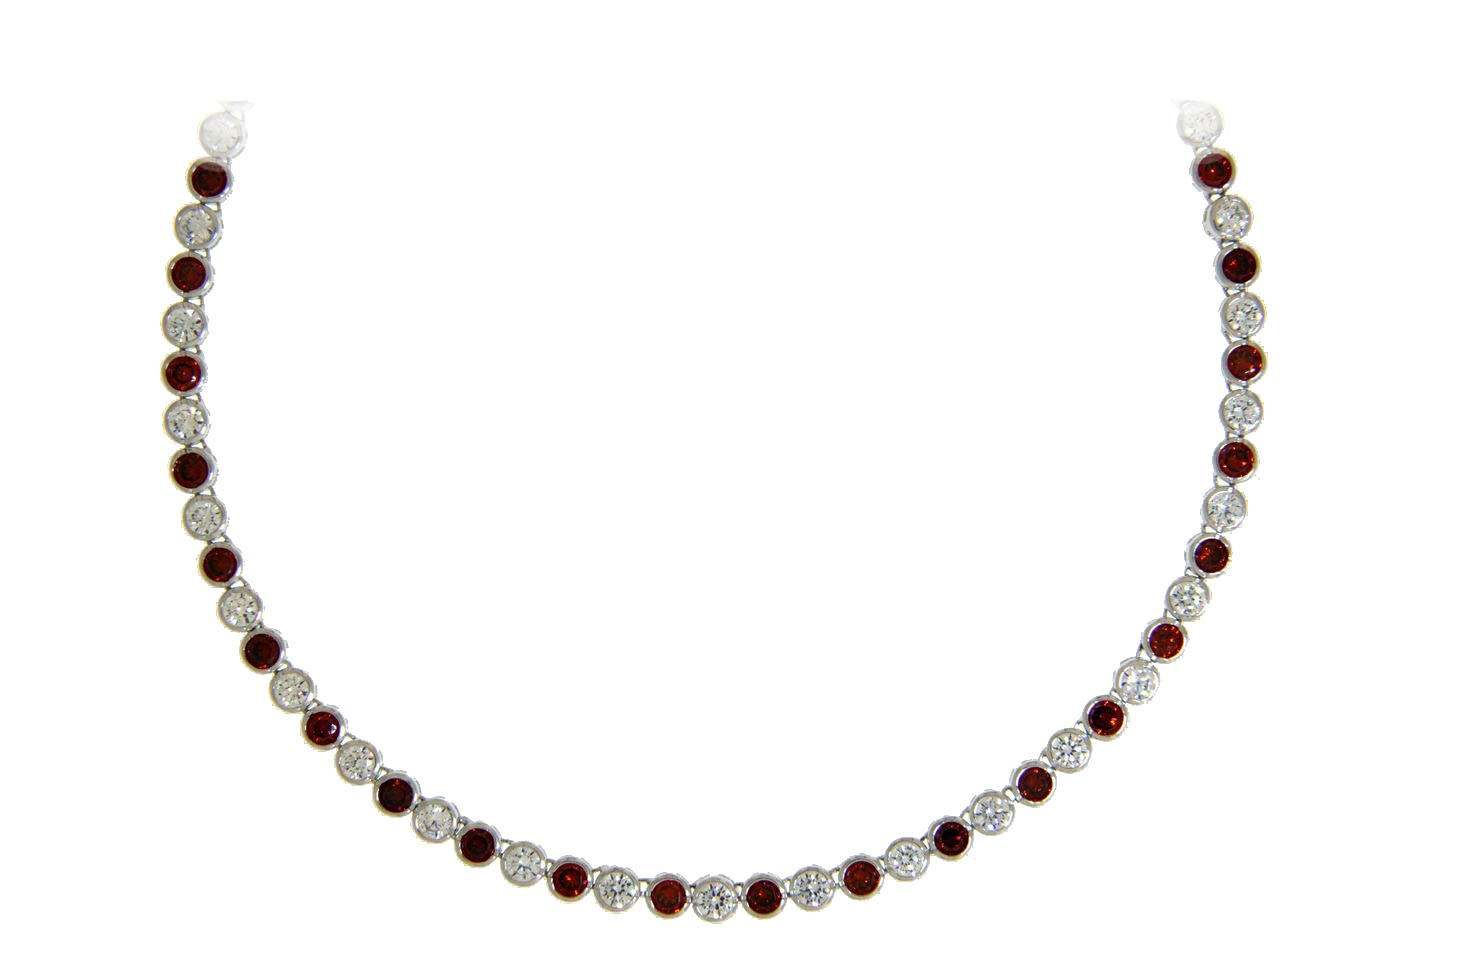 Collier Charlotte silber granat rot weiß frontal